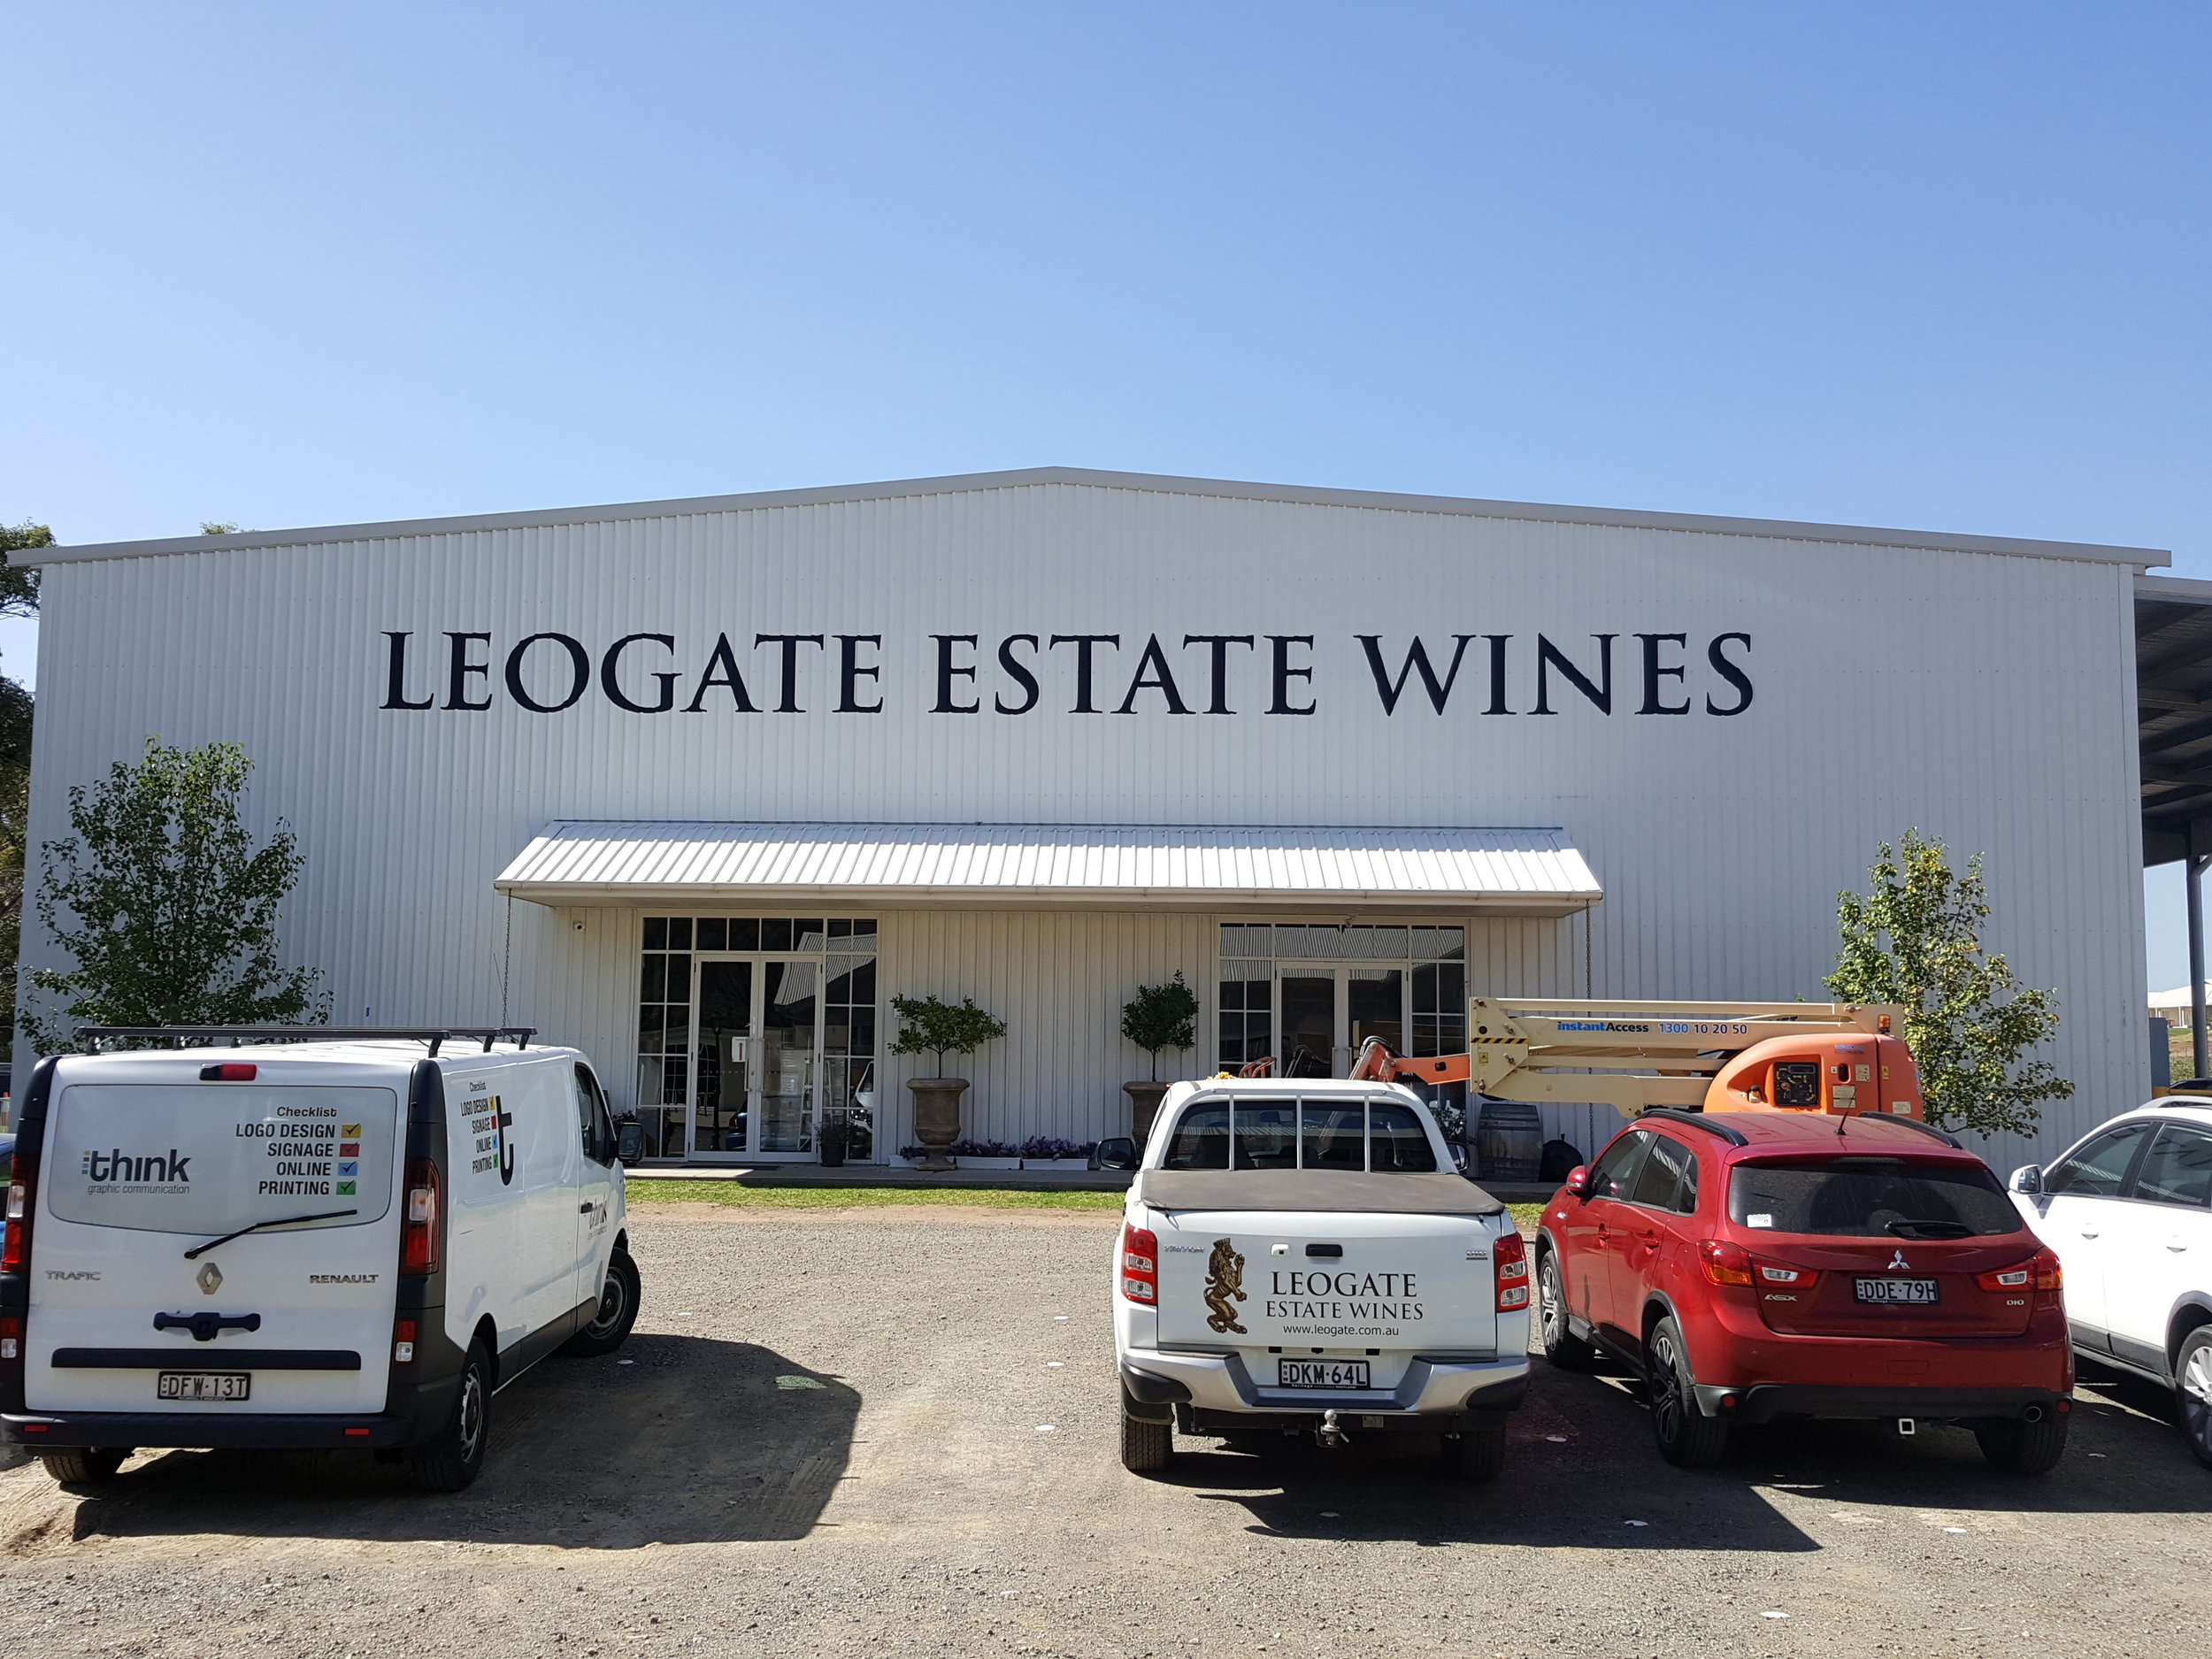 leogate estate wines.jpg